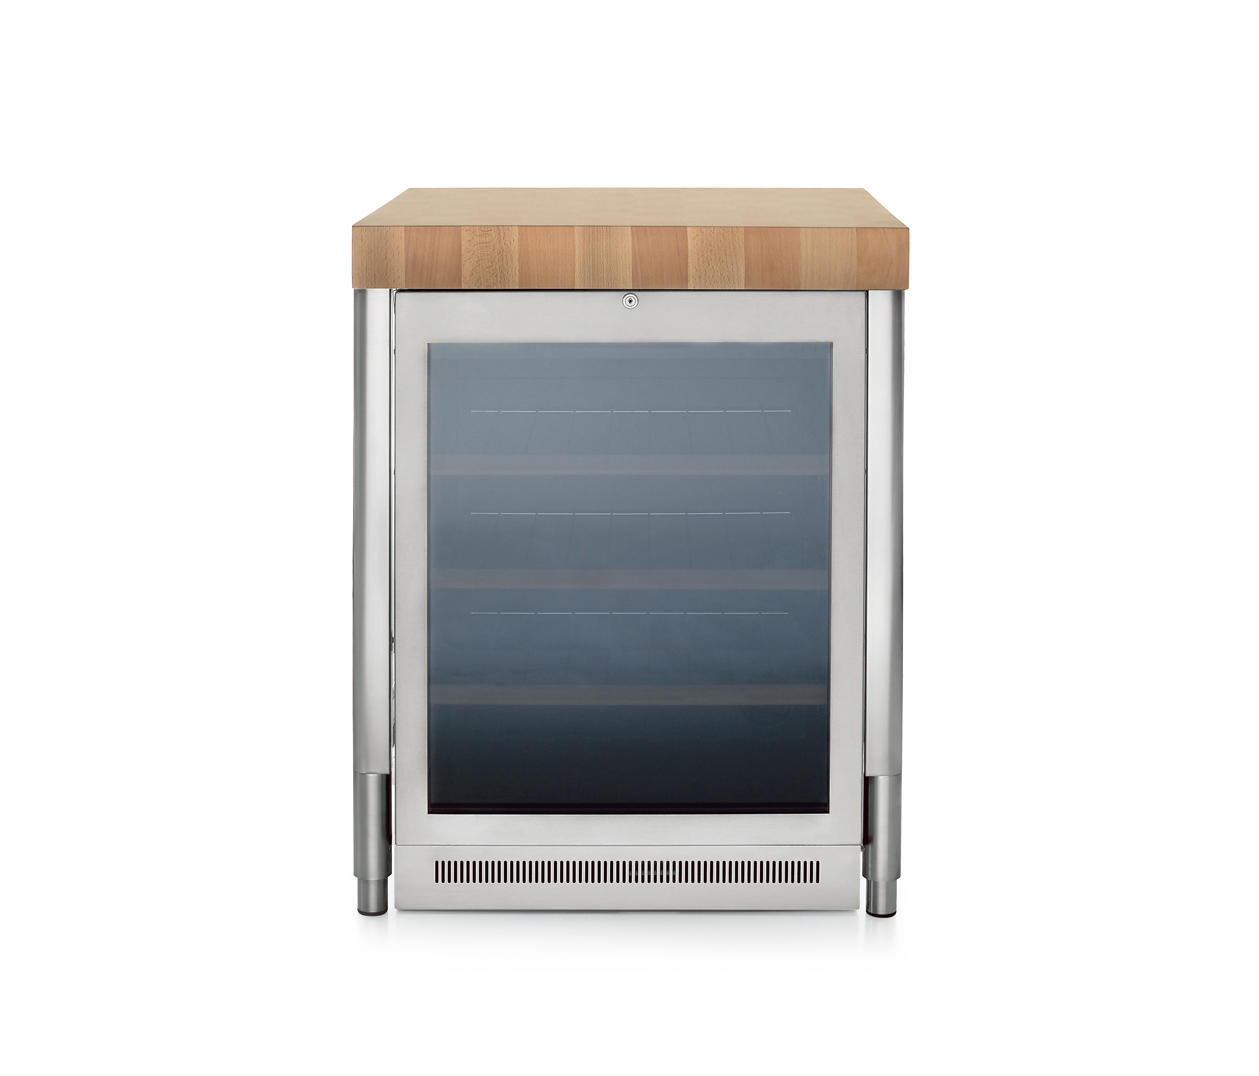 WINE COOLER 70 KITCHENS - Wine coolers from ALPES-INOX | Architonic